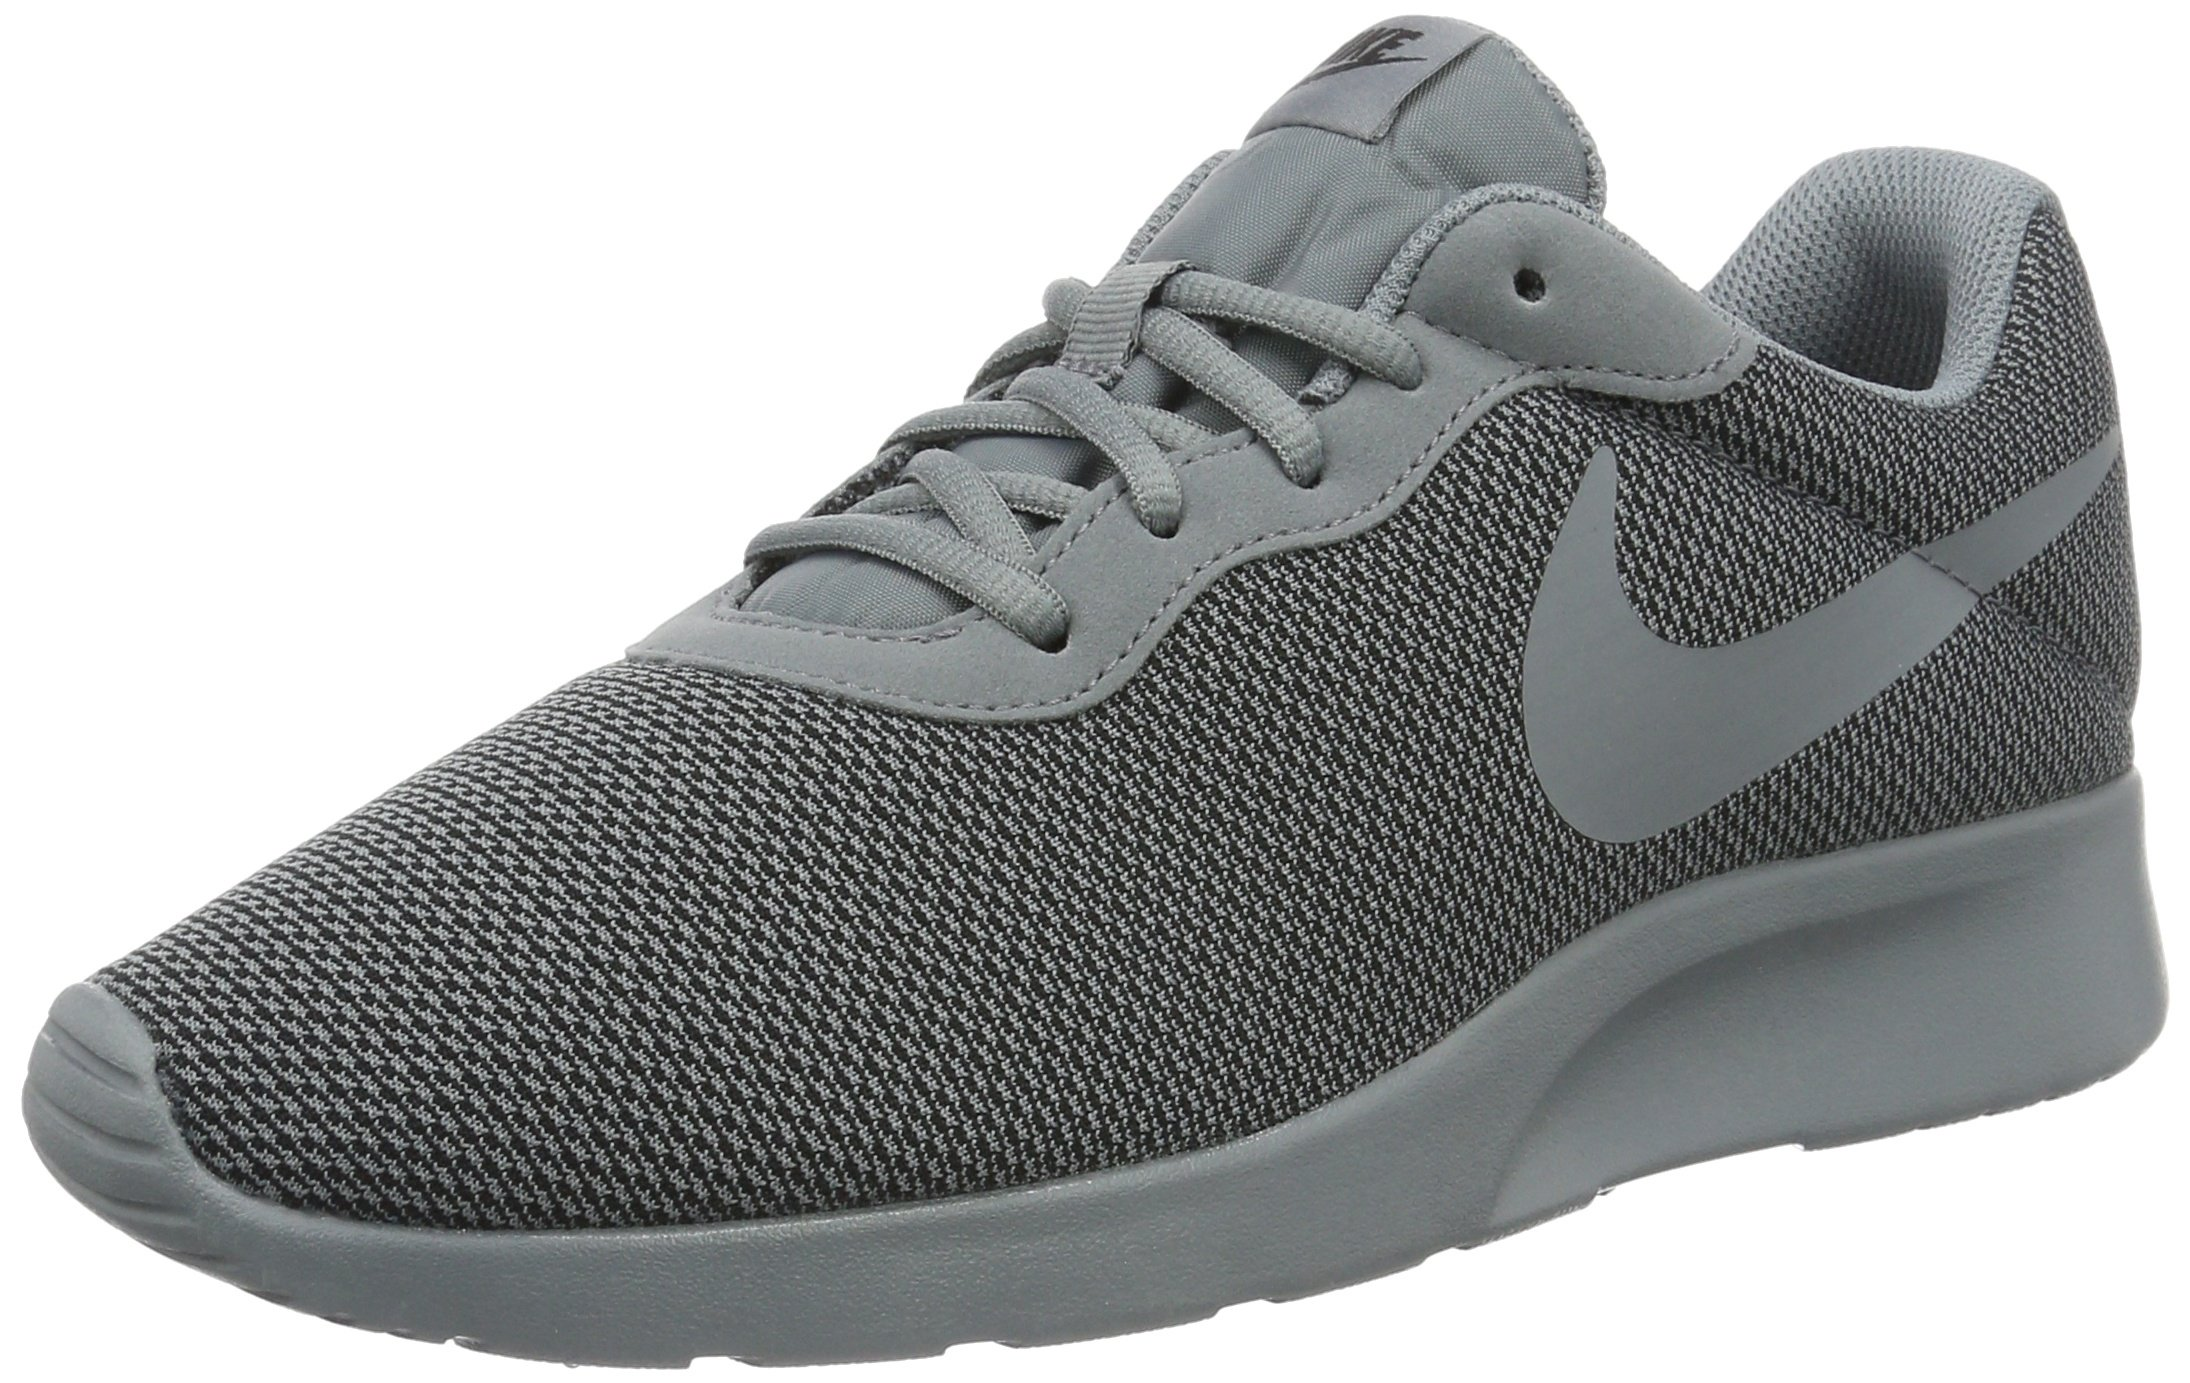 NIKE Mens Tanjun SE Cool Grey/Cool Grey-Black Size 9.5